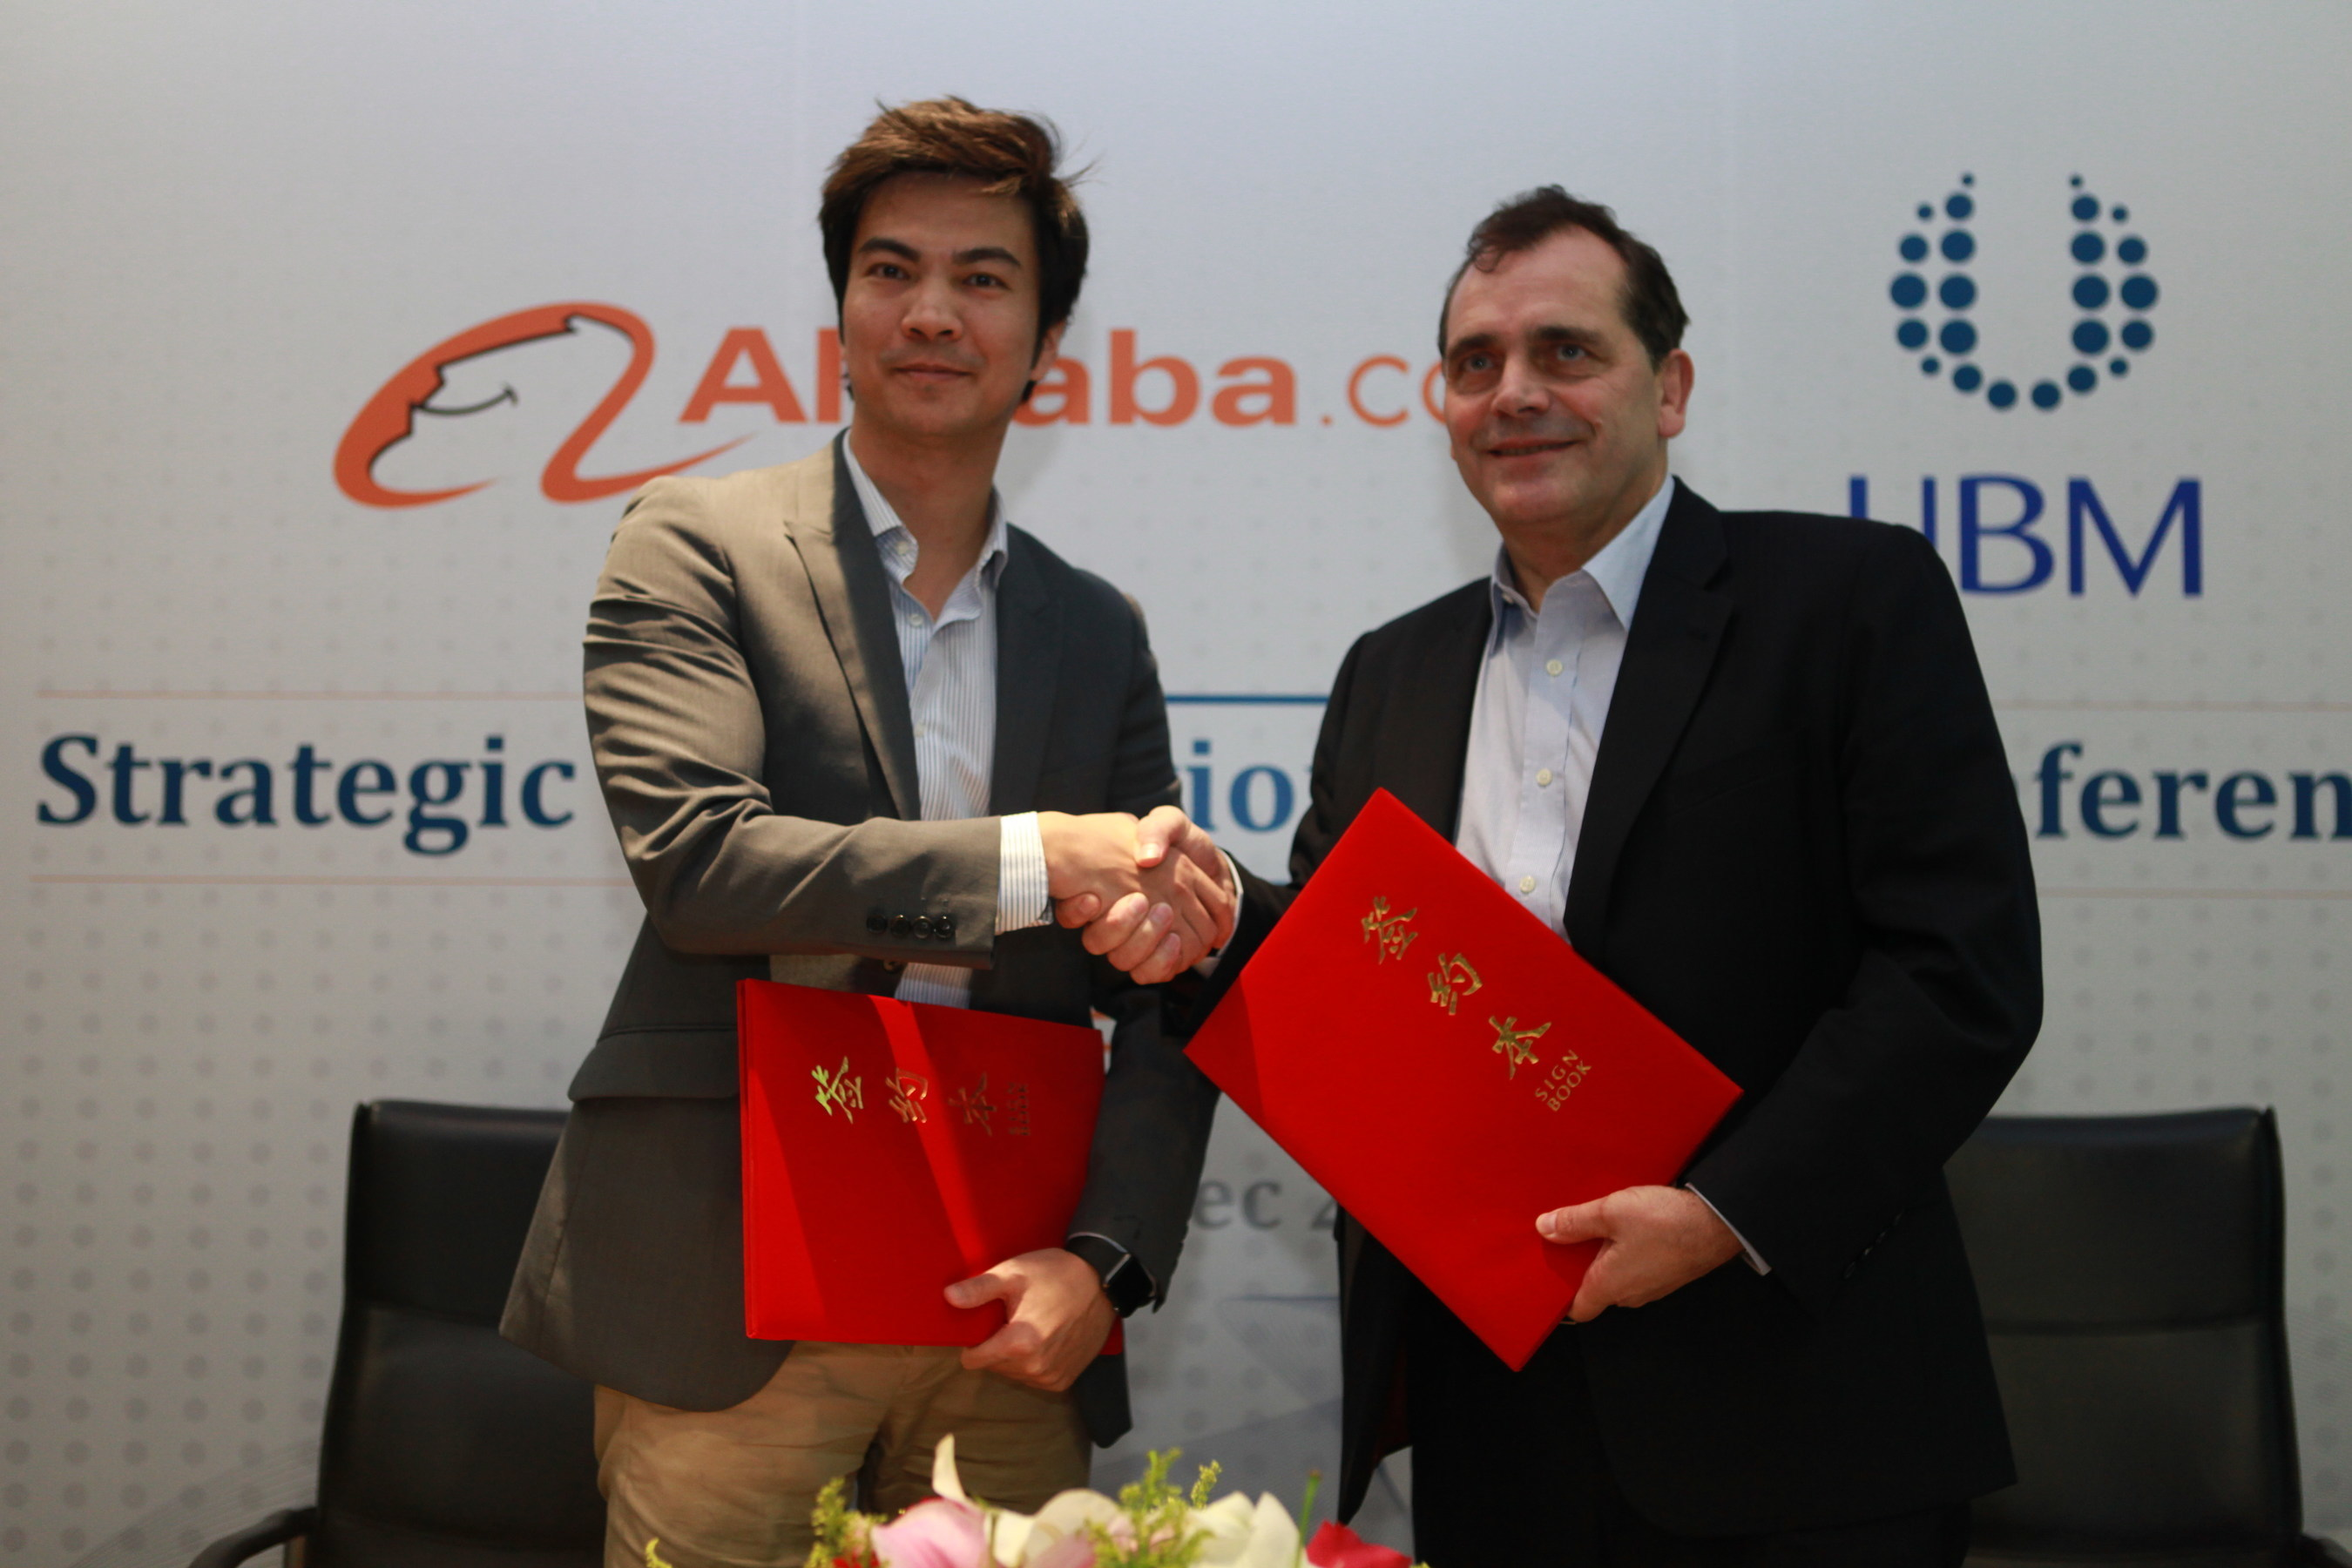 From left to right: James Dong (Alibaba), Jime Essink (UBM Asia)